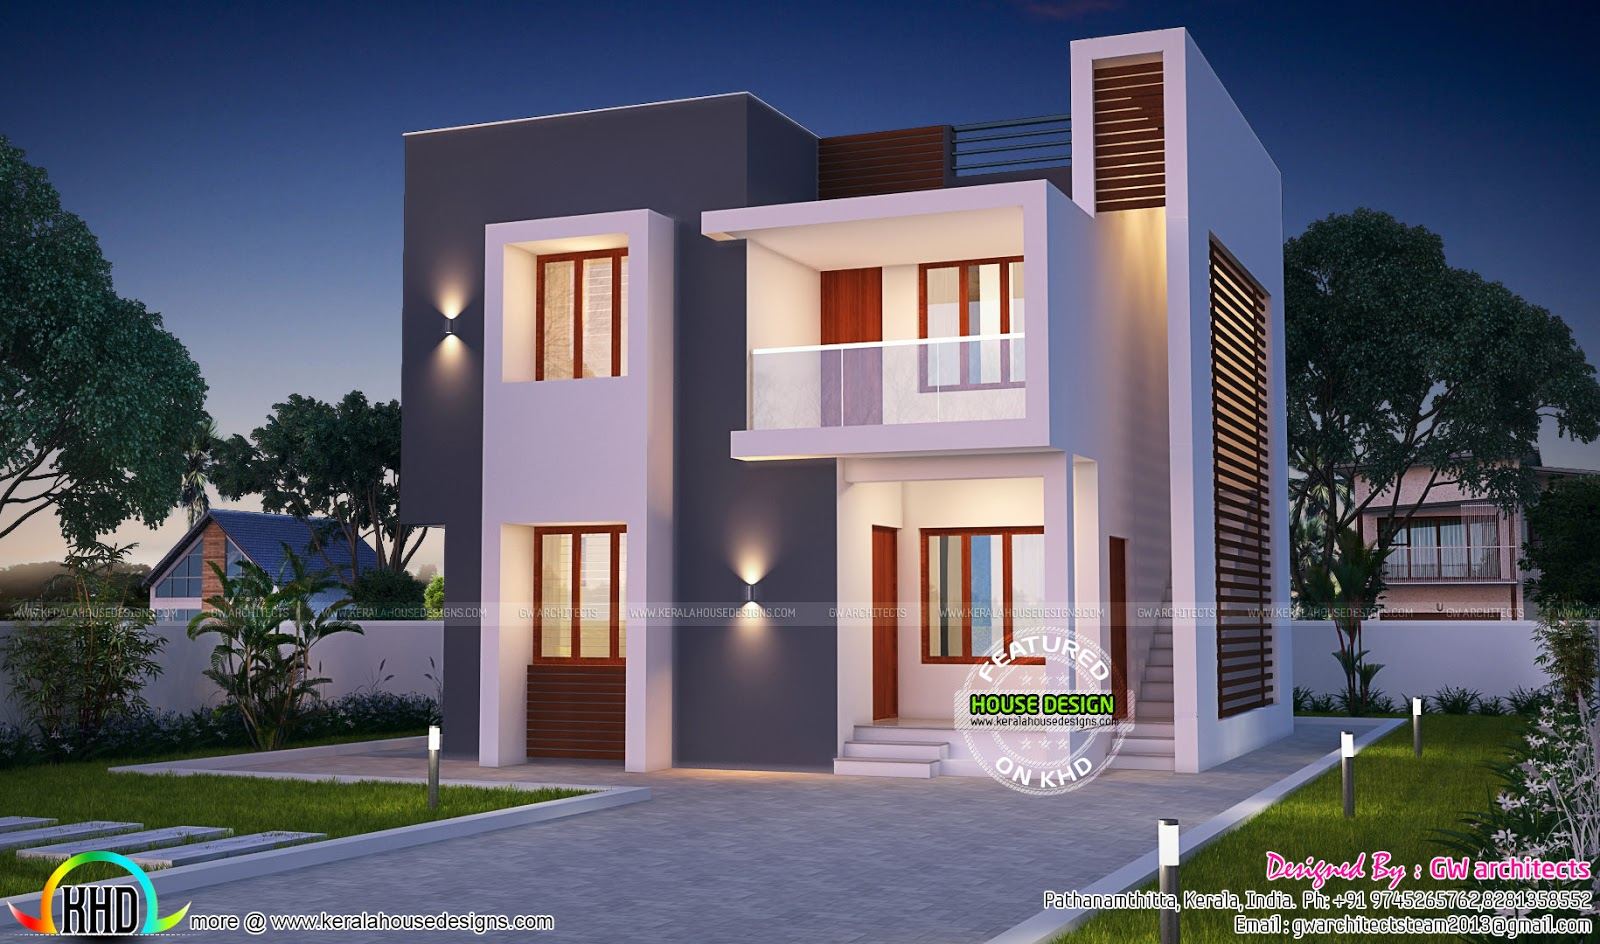 House design khd - Beautiful Modern Home With Floor Plan